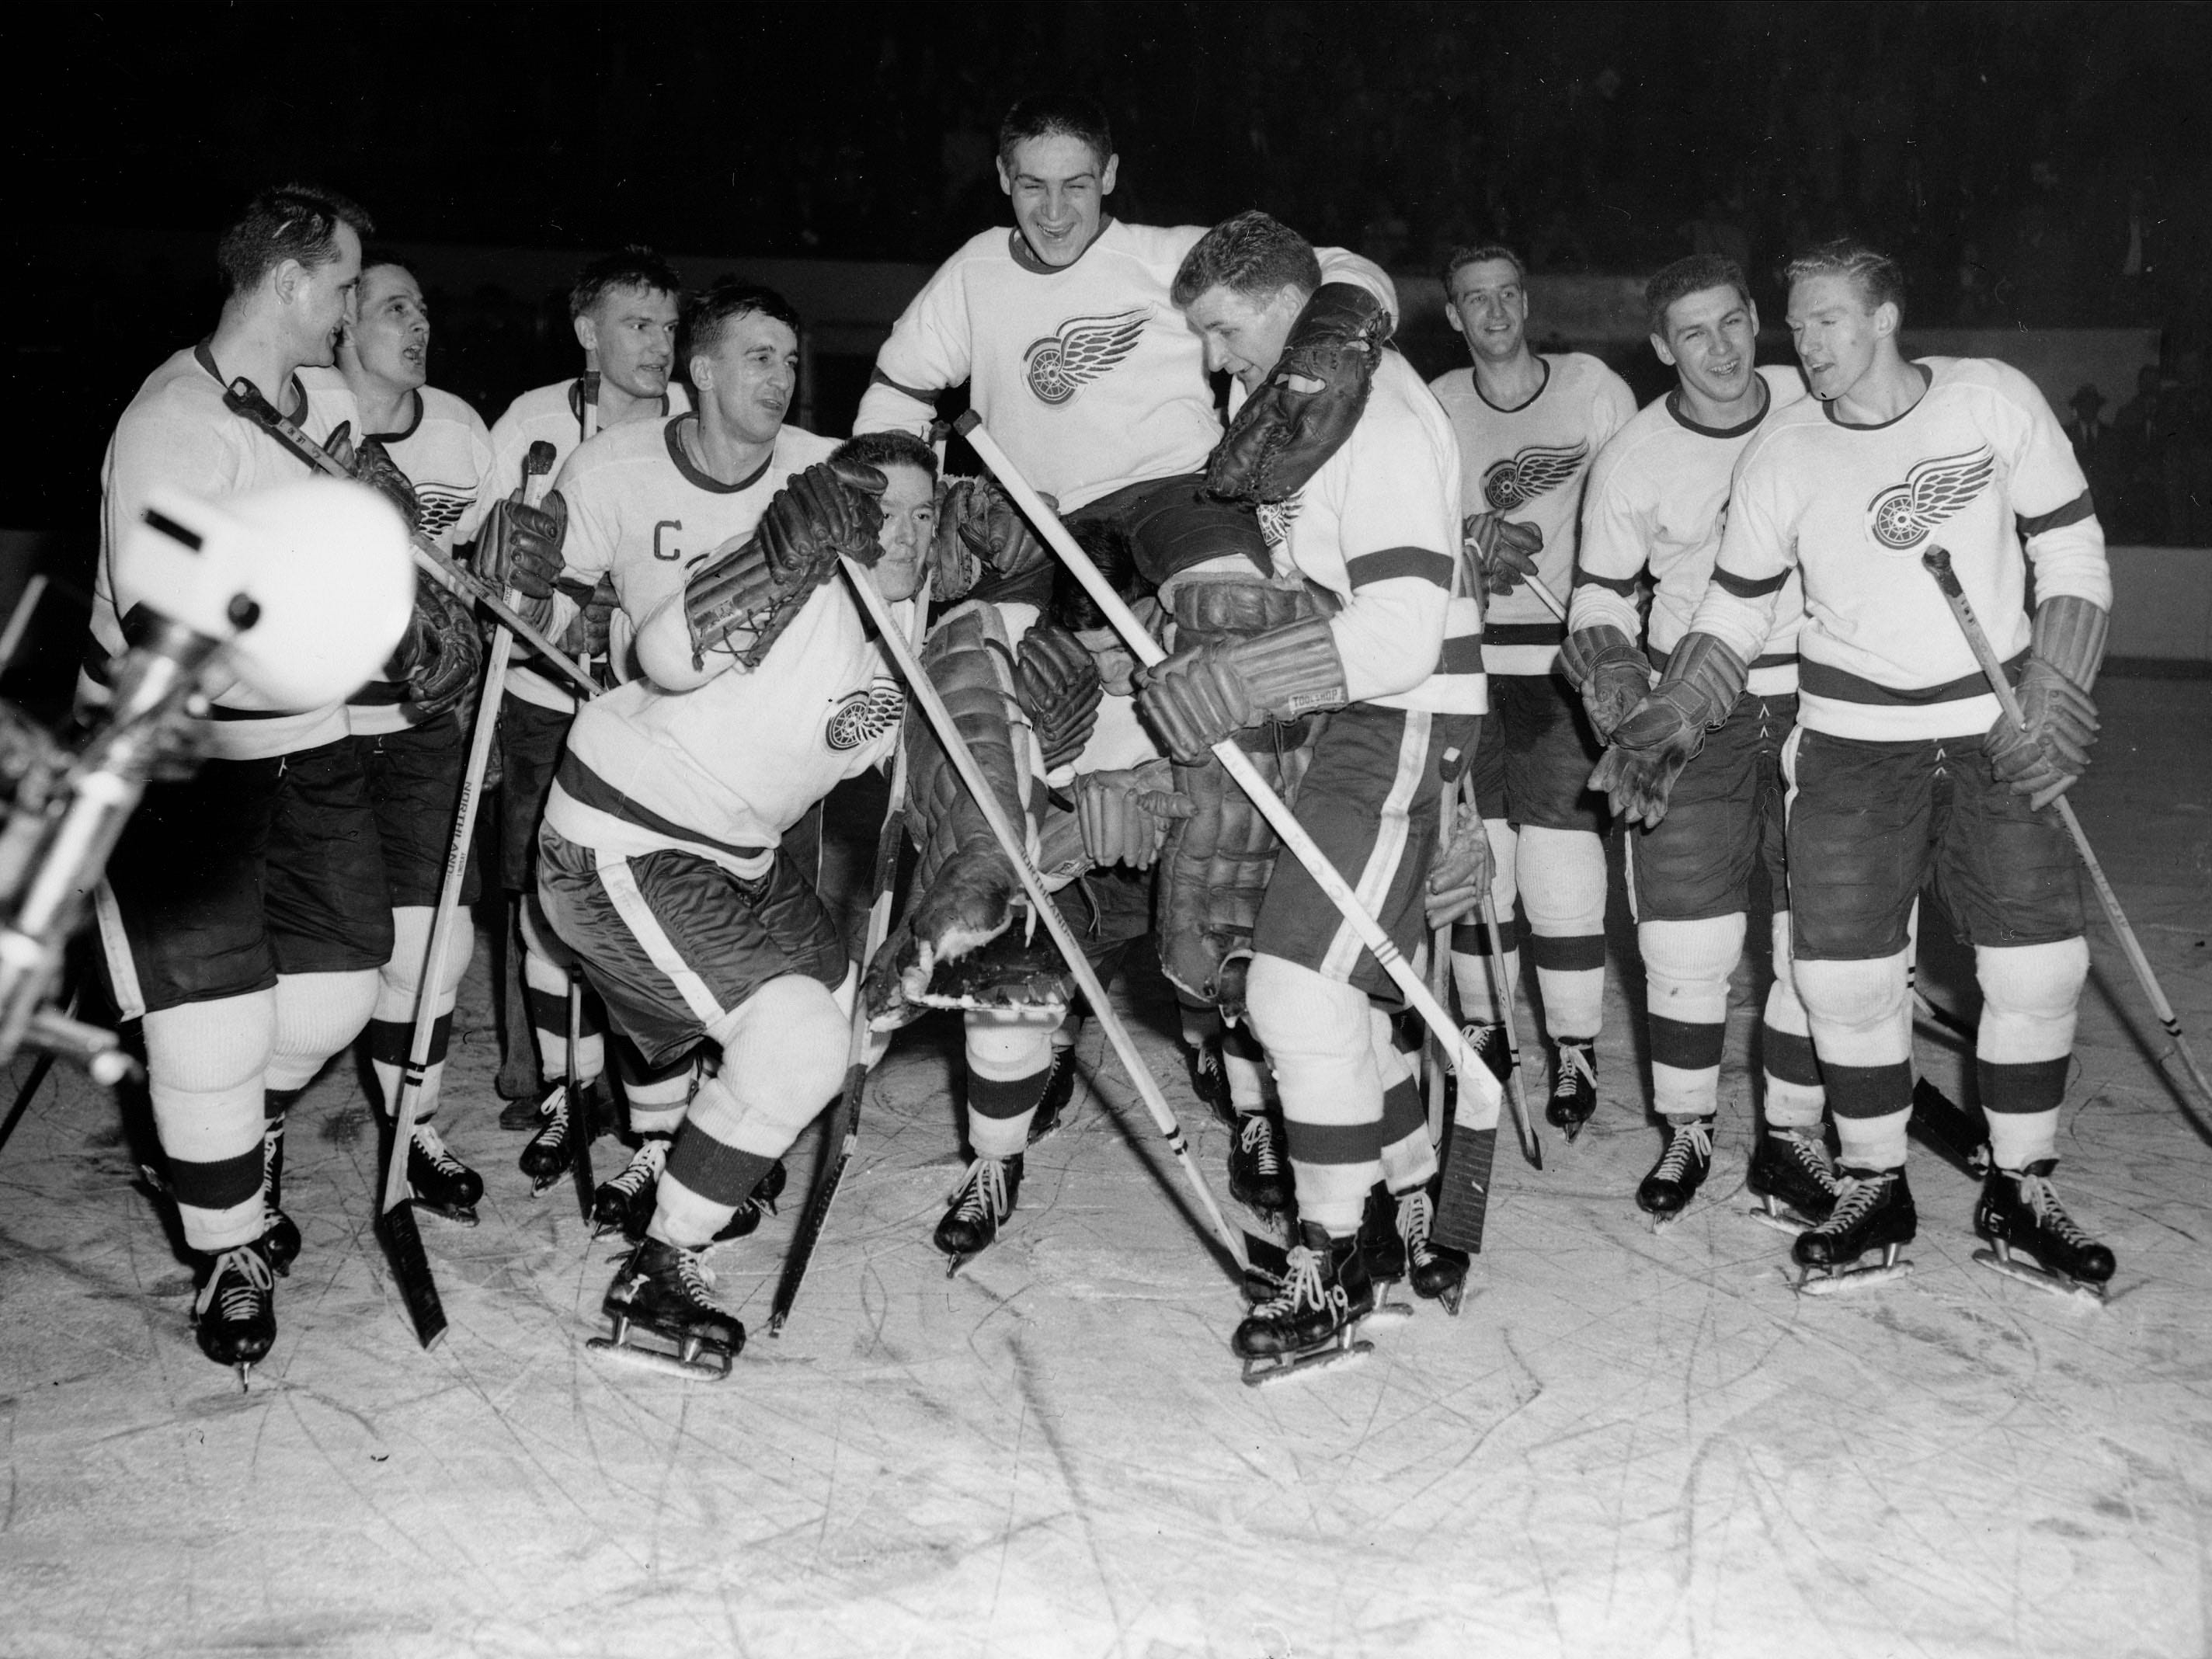 Goalie Terry Sawchuck is lifted by teammates Vic Stasiuk, right, and Marcel Pronovost after he shut out the Montreal Canadiens 6-0 to give the Detroit Red Wings the NHL championship in Detroit, March 21, 1955. Star of the game is Ted Lindsay, second from left, with three goals.